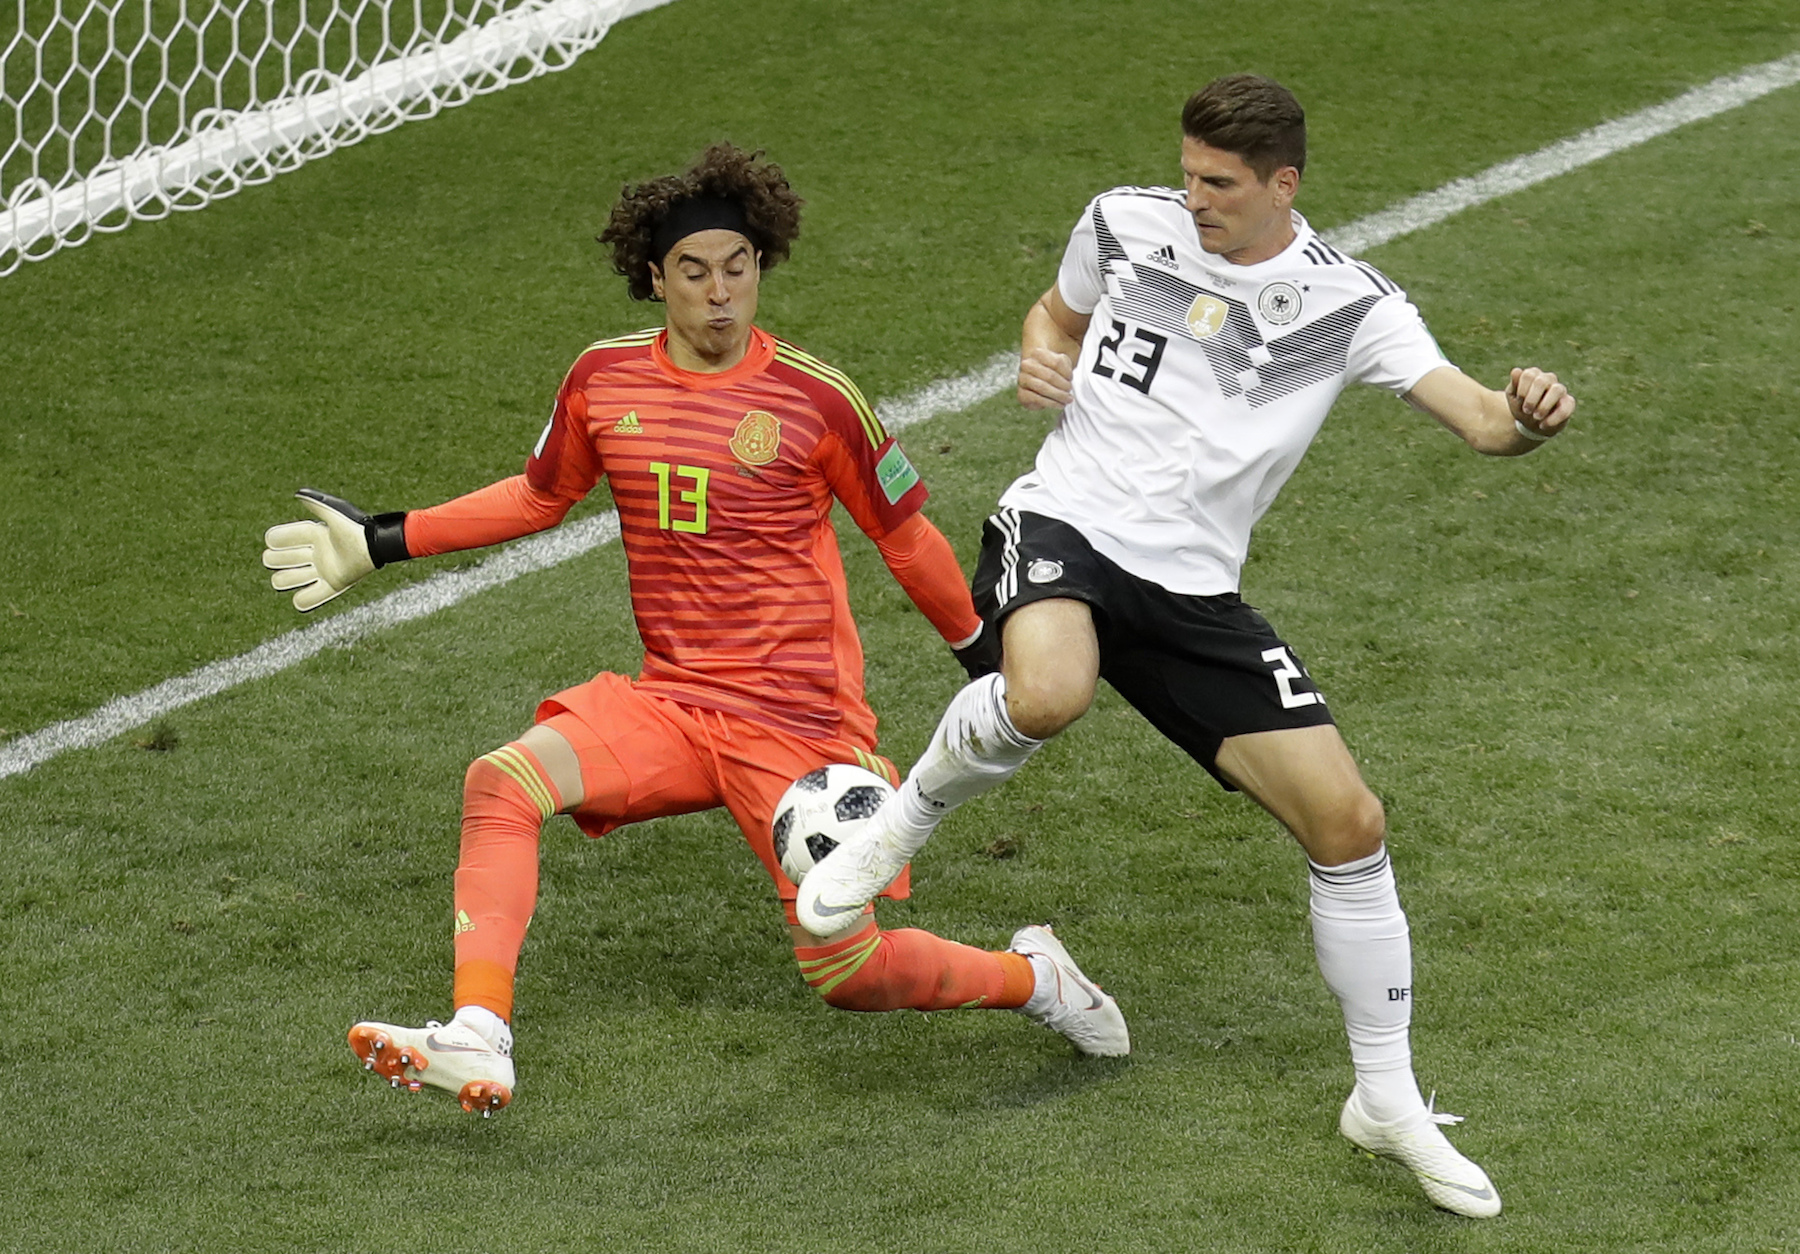 <div class='meta'><div class='origin-logo' data-origin='AP'></div><span class='caption-text' data-credit='AP Photo/Michael Probst'>Mexico goalkeeper Guillermo Ochoa blocks Germany's Mario Gomez during the group F match between Germany and Mexico at the 2018 soccer World Cup.</span></div>